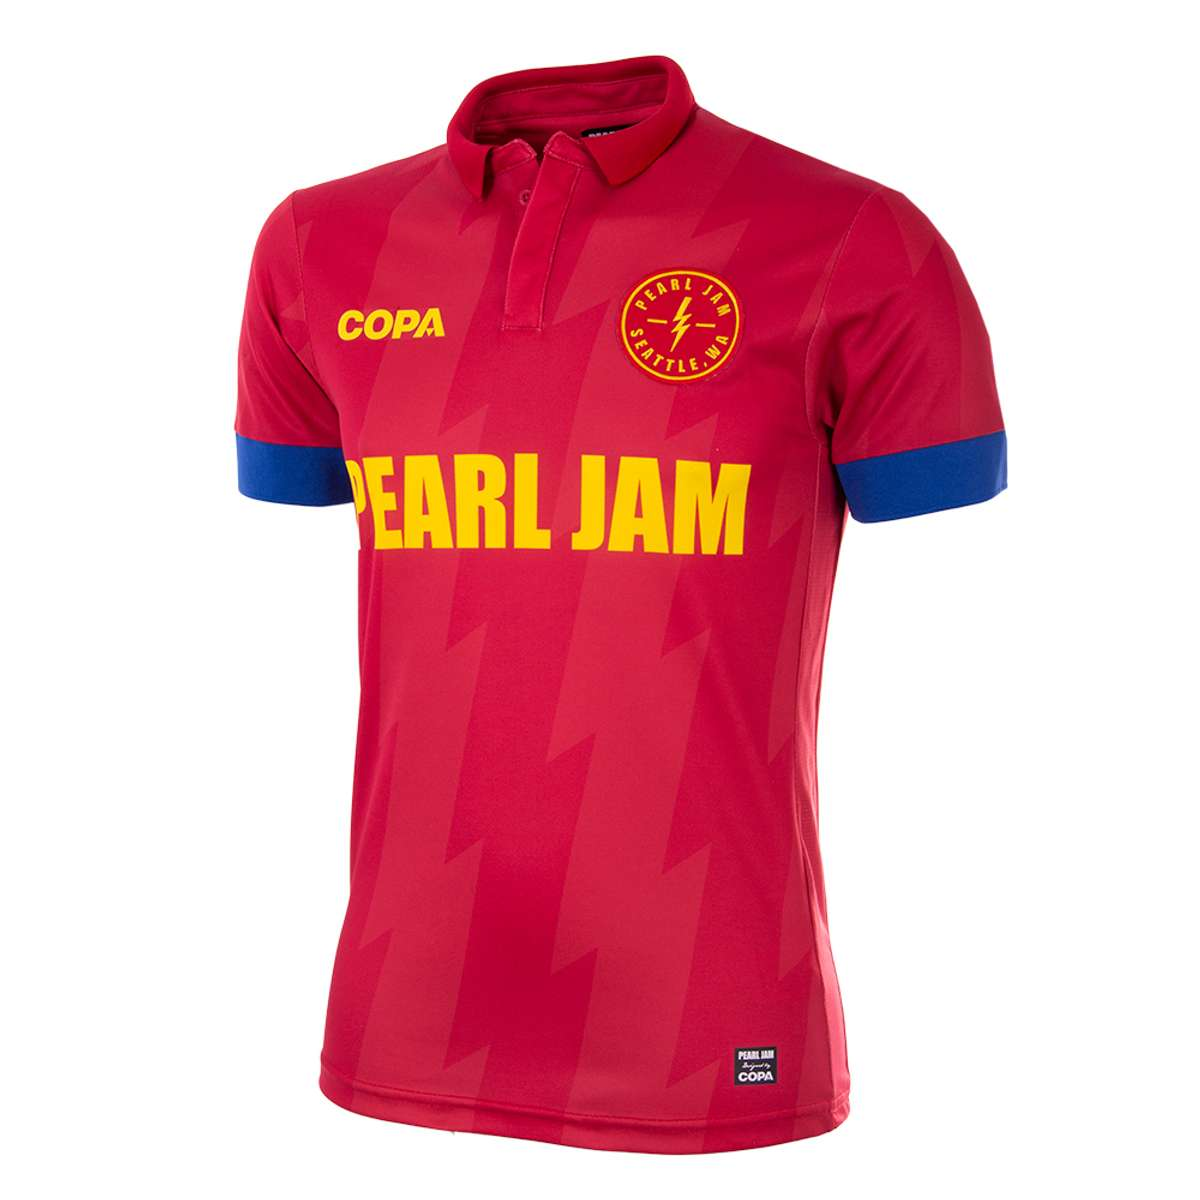 Spain – Soccer Shirt - Pearl Jam